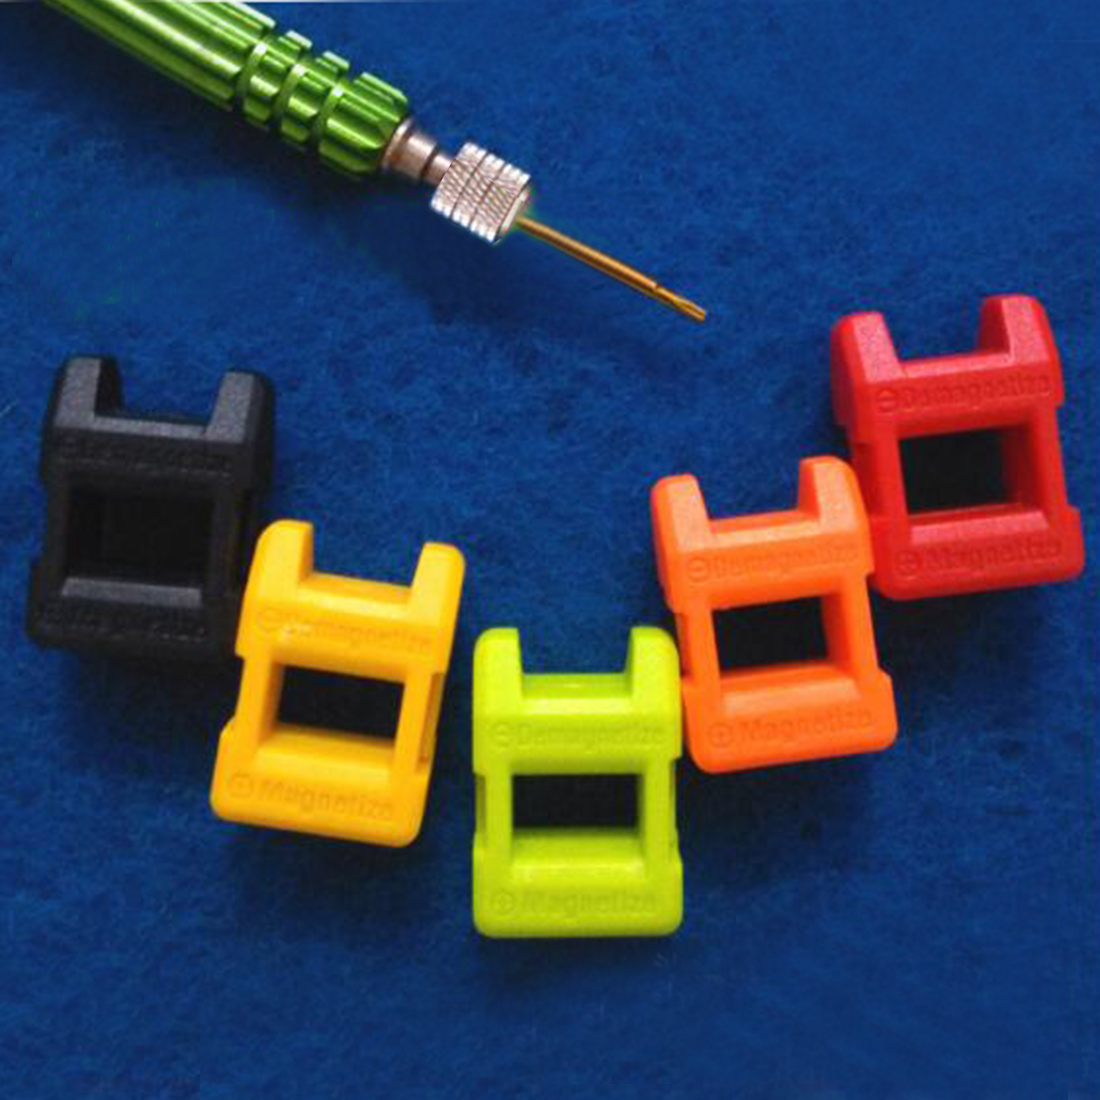 Mini - Fast 2 in 1 Magnetizer Demagnetizer Tool Screwdriver Magnetic High Quality Colour Send Random orange 5mm hole dia screwdriver bit magnetizer demagnetizer ring 2 pcs